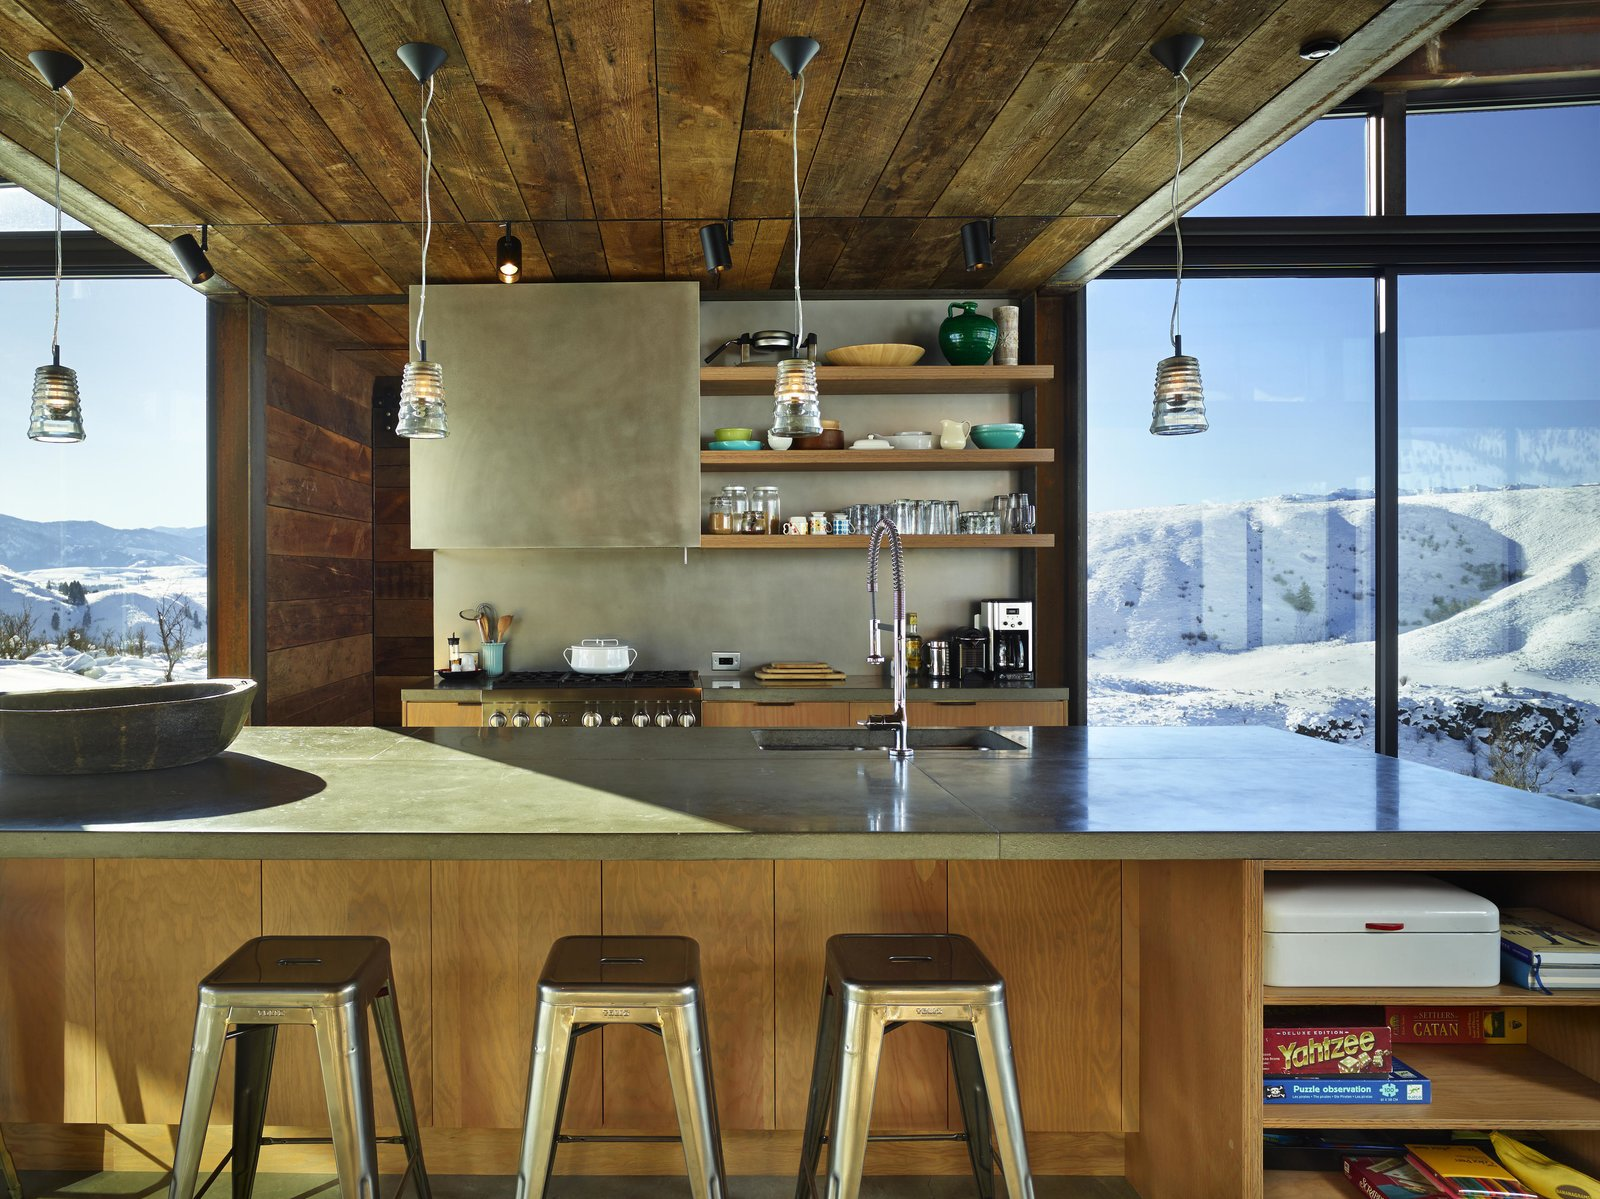 Wood siding salvaged from an old barn in Spokane, Washington, was repurposed for the project. Tagged: Kitchen, Concrete Counter, Wood Cabinet, and Pendant Lighting.  Photo 5 of 11 in A Steel-and-Glass Compound Is One Family's Launchpad For Adventure